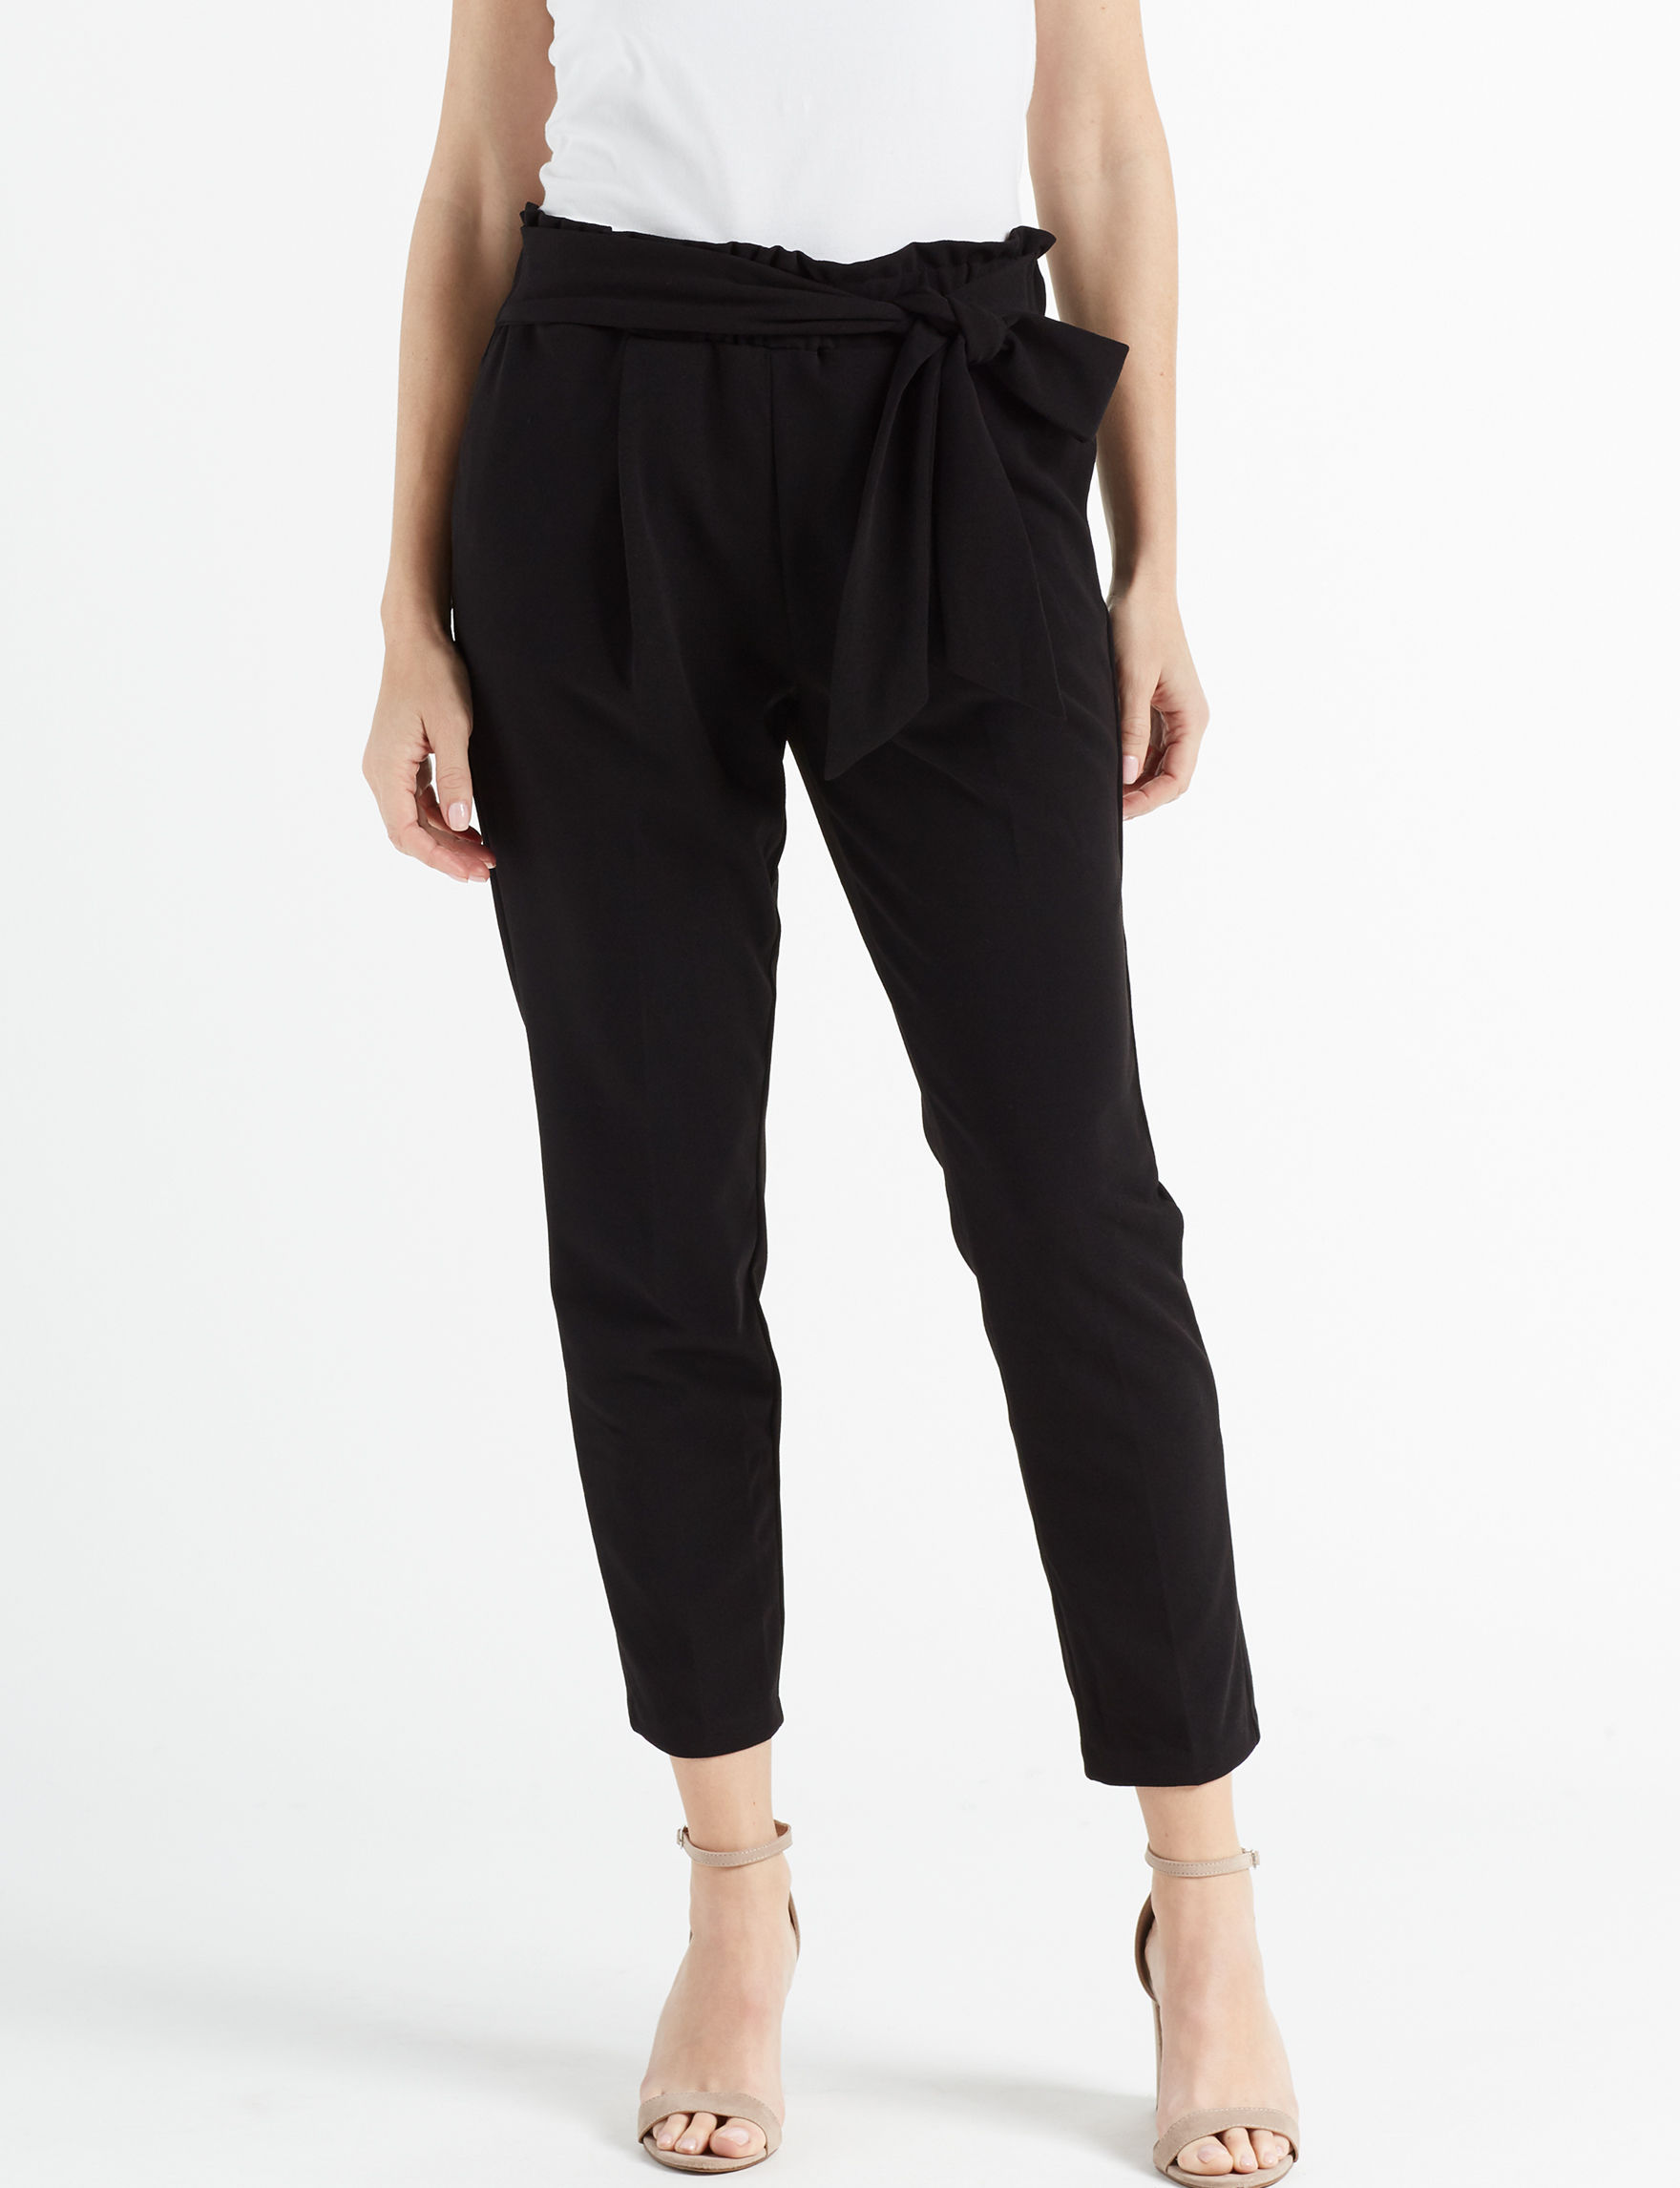 One 5 One Black Soft Pants